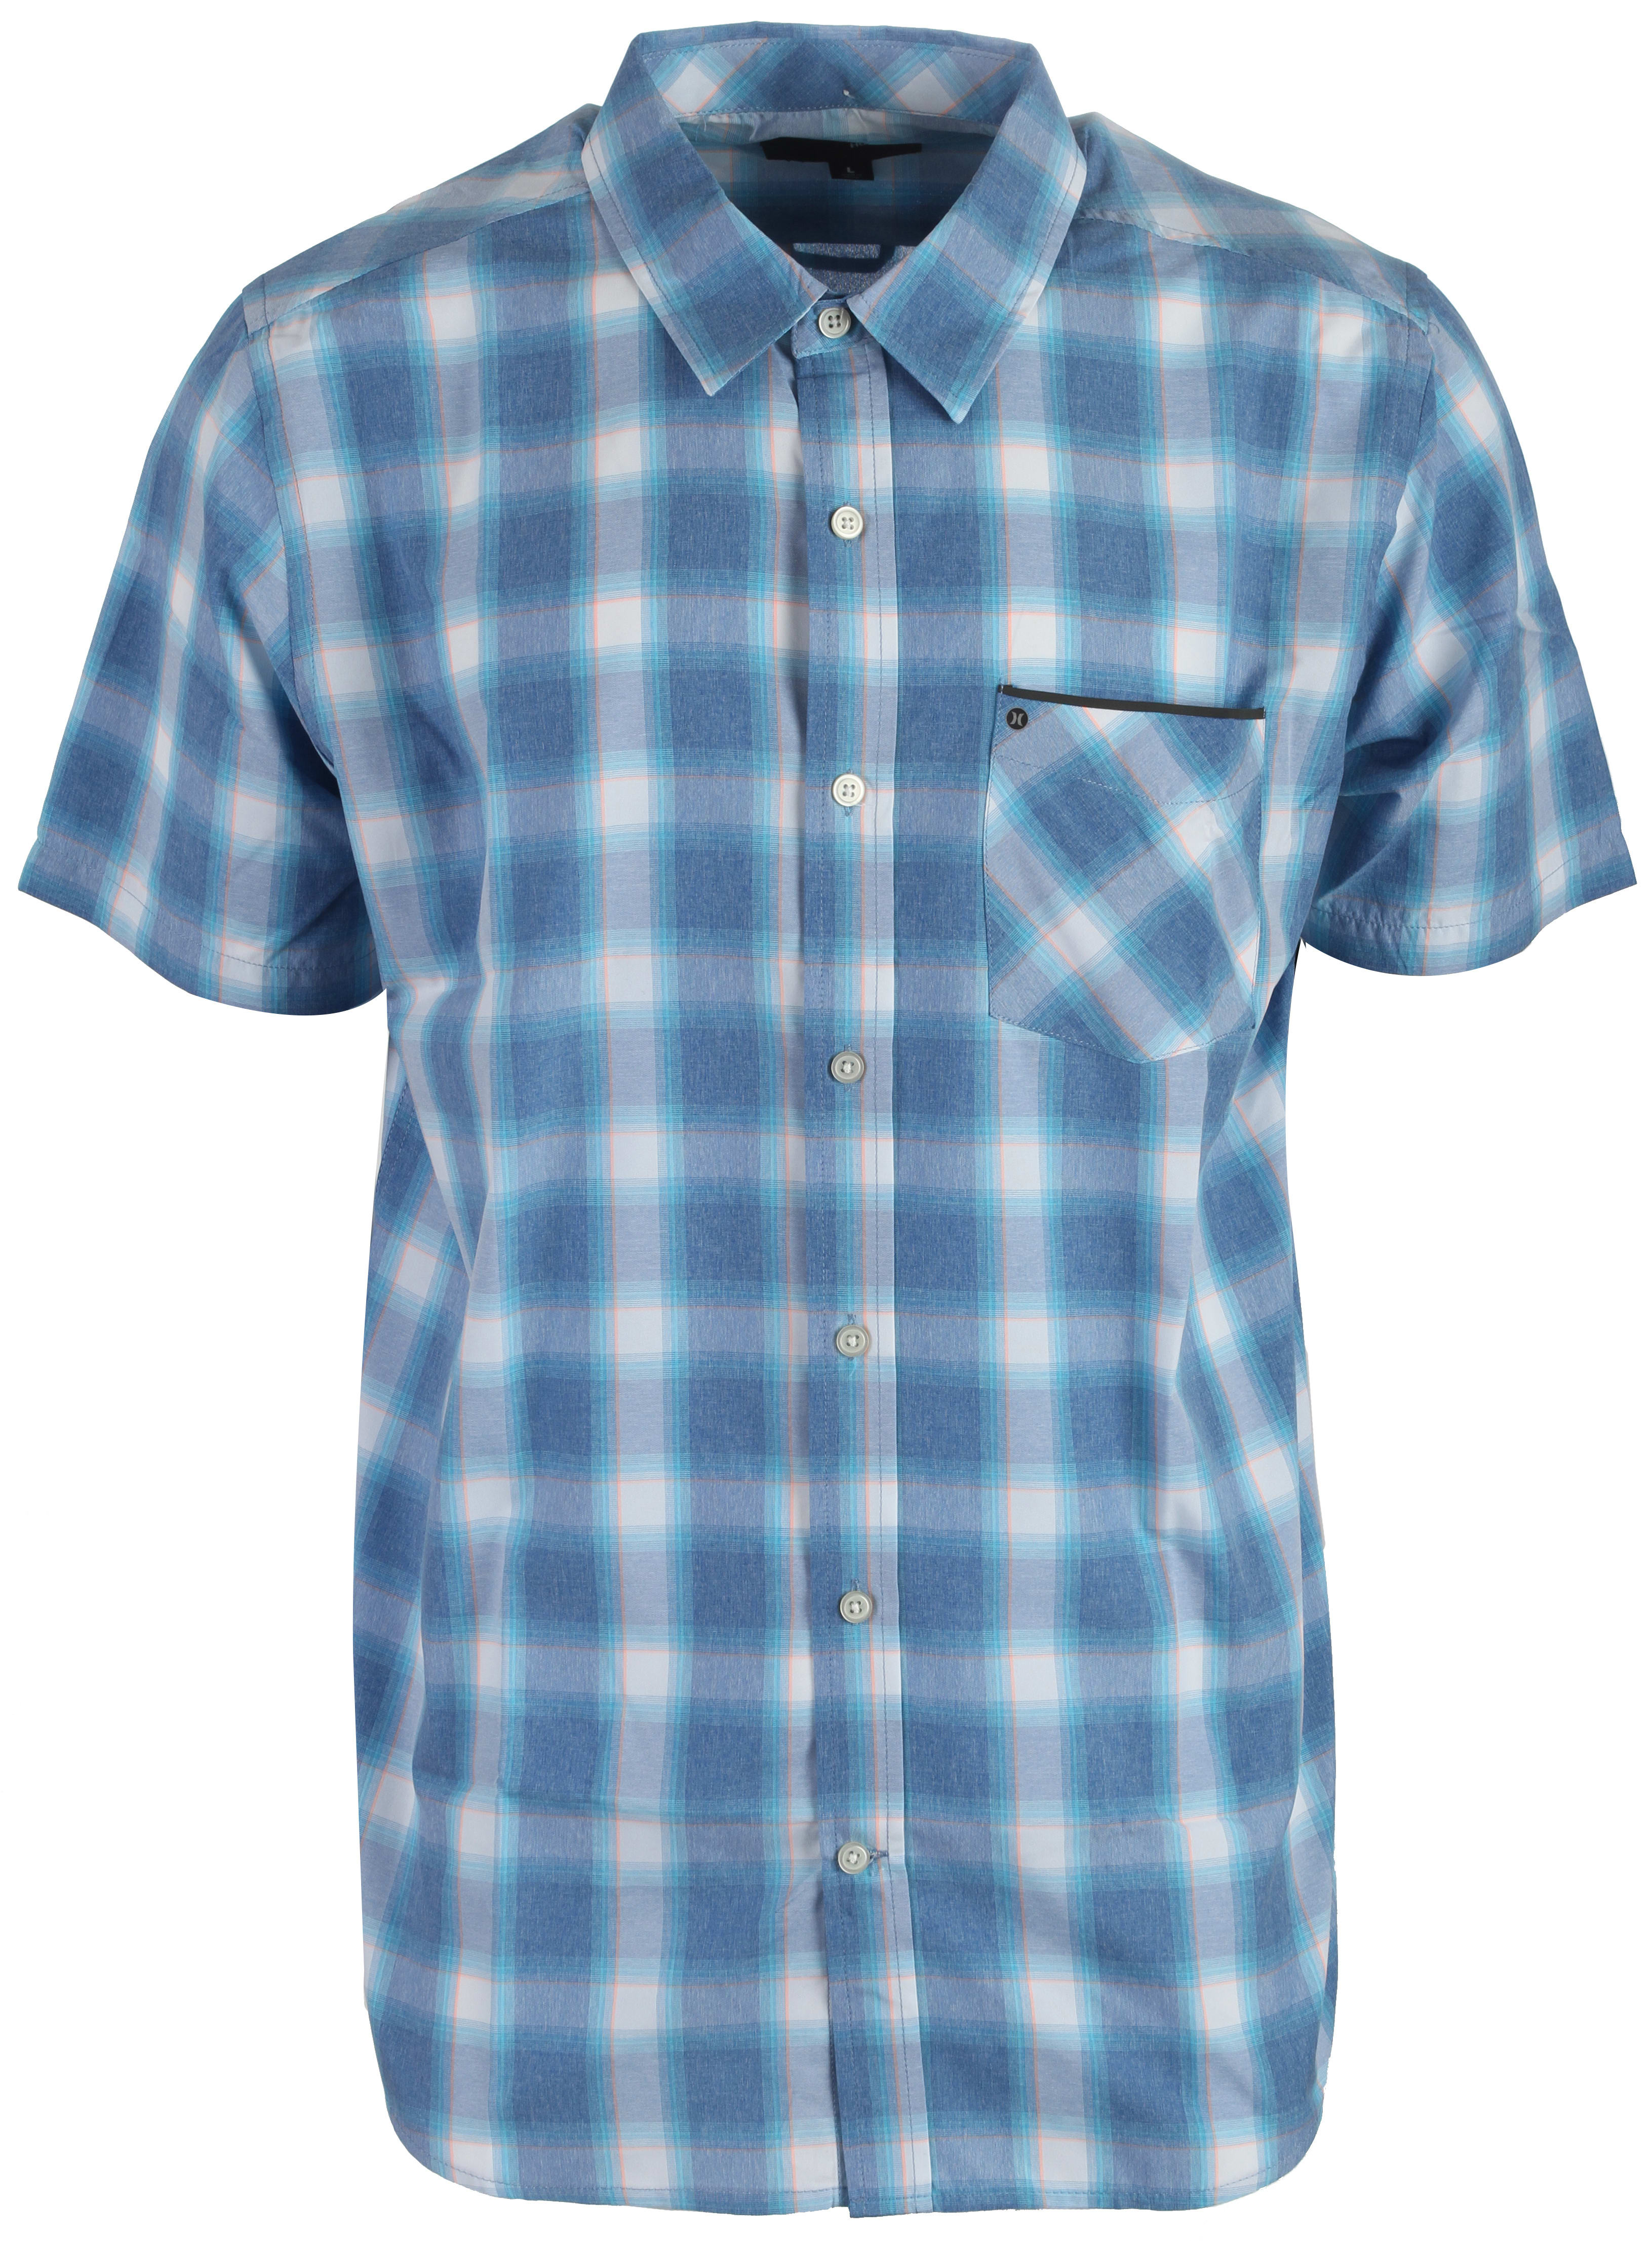 On sale hurley dri fit dakota shirt up to 45 off for Dri fit shirts on sale